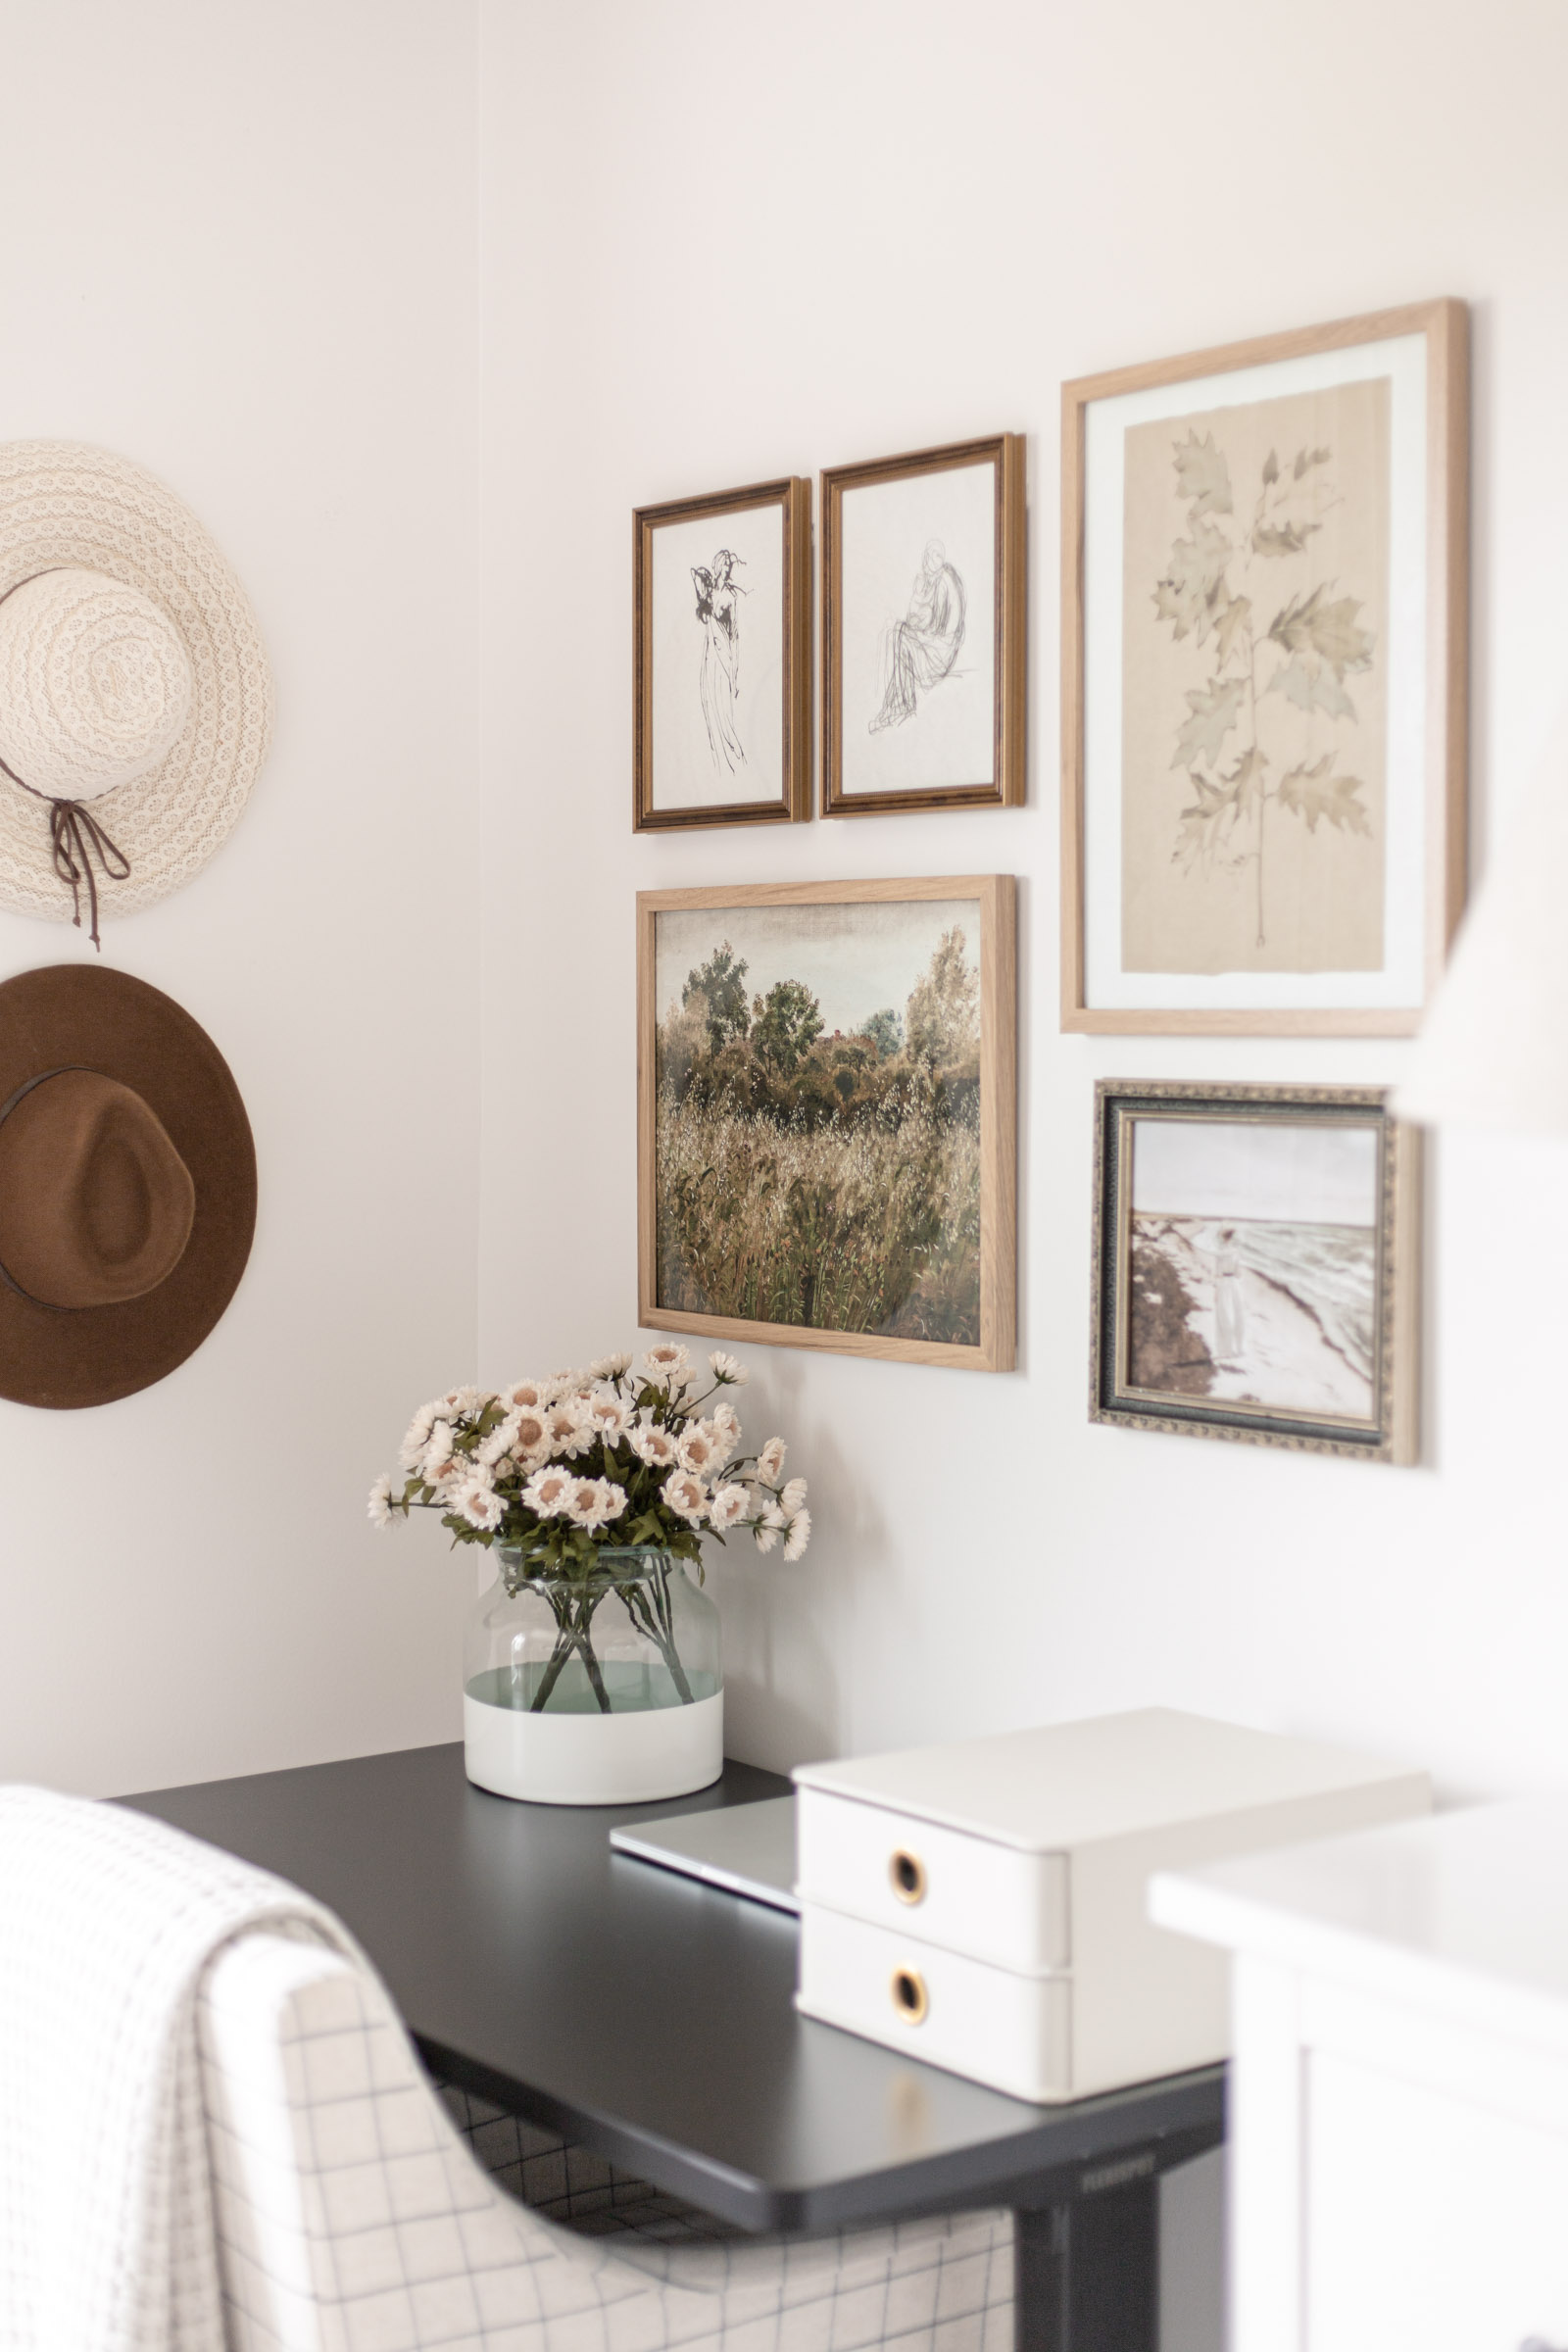 Bedroom Office Nook (and Vintage Art Gallery Wall) | black sit to stand electric standing desk, hats hanging on wall, poetto vase, collected antique art gallery wall